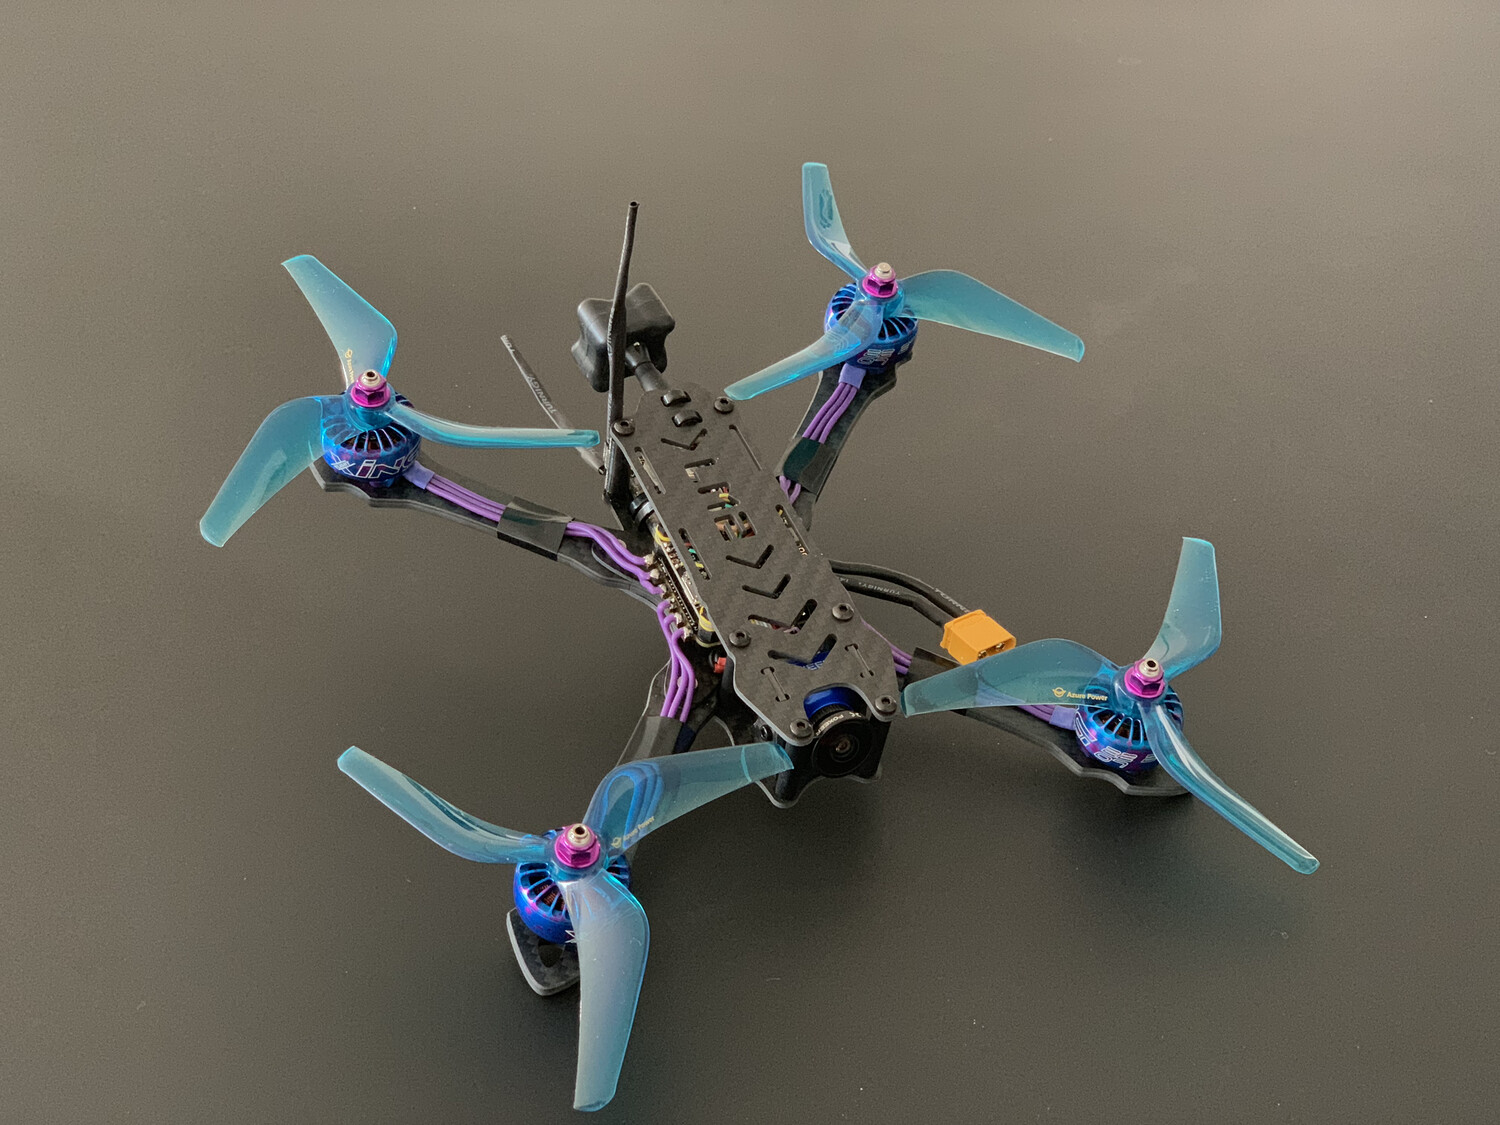 LMultirotors Frame - BNF Drone ( Bind-and-Fly )